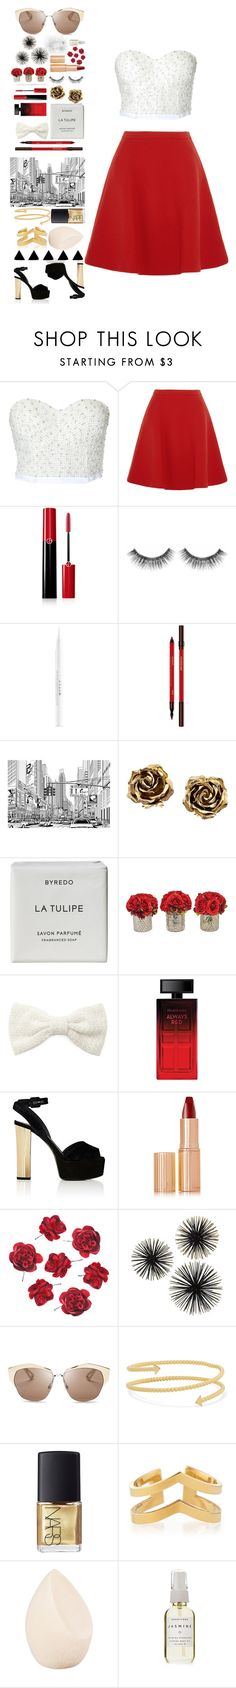 """red skirt"" by retro-obsessed ❤ liked on Polyvore featuring Miu Miu, Giorgio Armani, Sephora Collection, Stila, Hourglass Cosmetics, Tiffany & Co., Byredo, Forever 21, Elizabeth Arden and Giuseppe Zanotti"